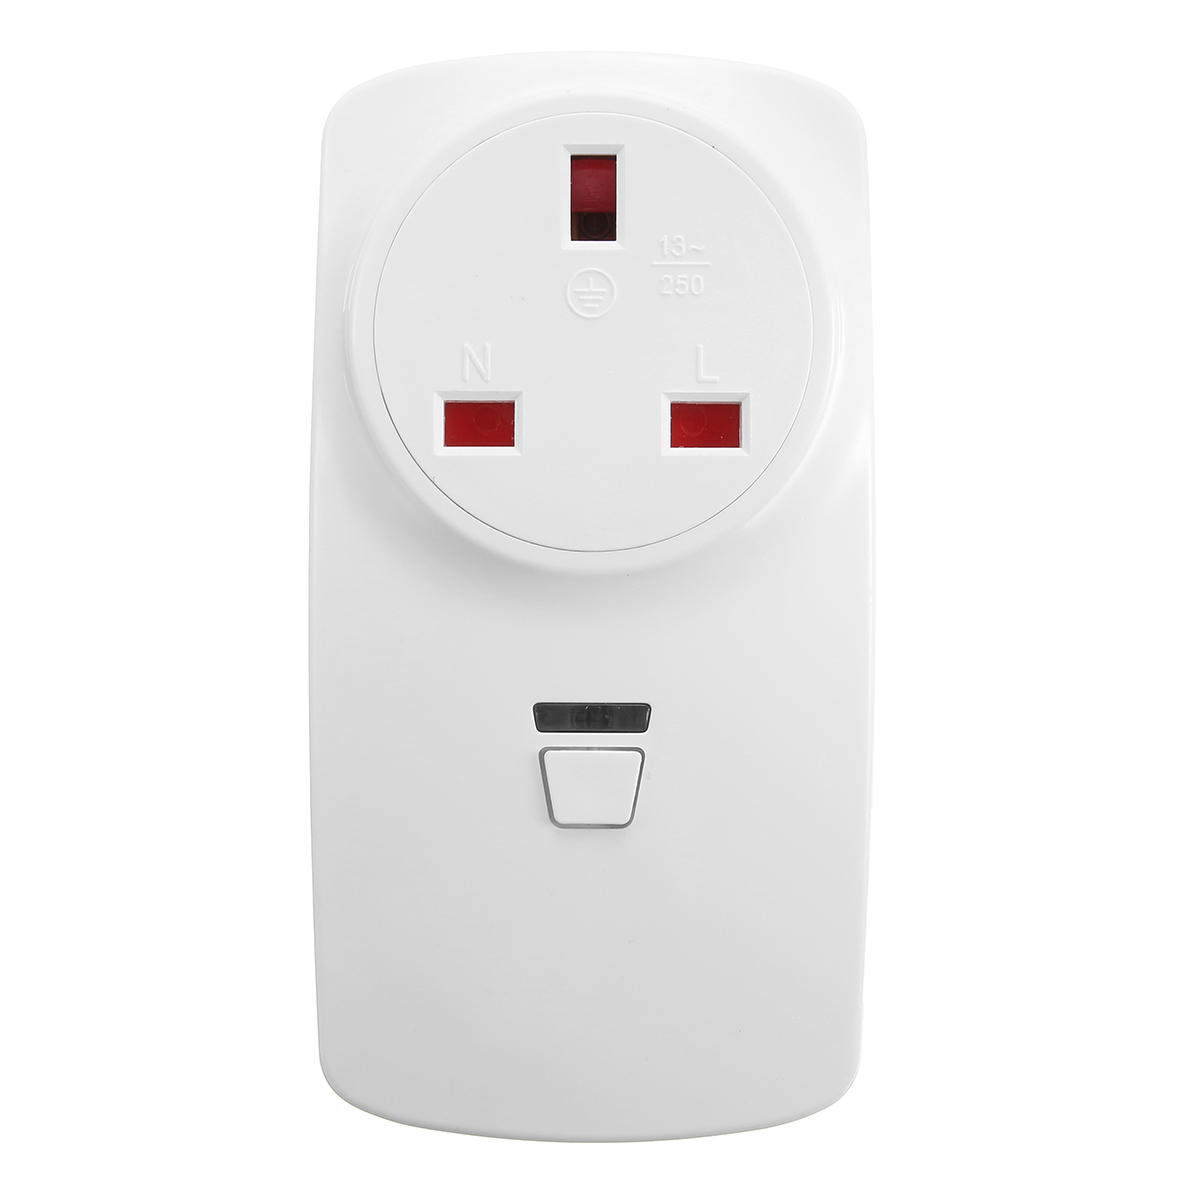 Claite 16A UK Plug Wifi Wireless remoto Smart Switch Tomada Plug Outlet Timer APP para ECHO ALEXA